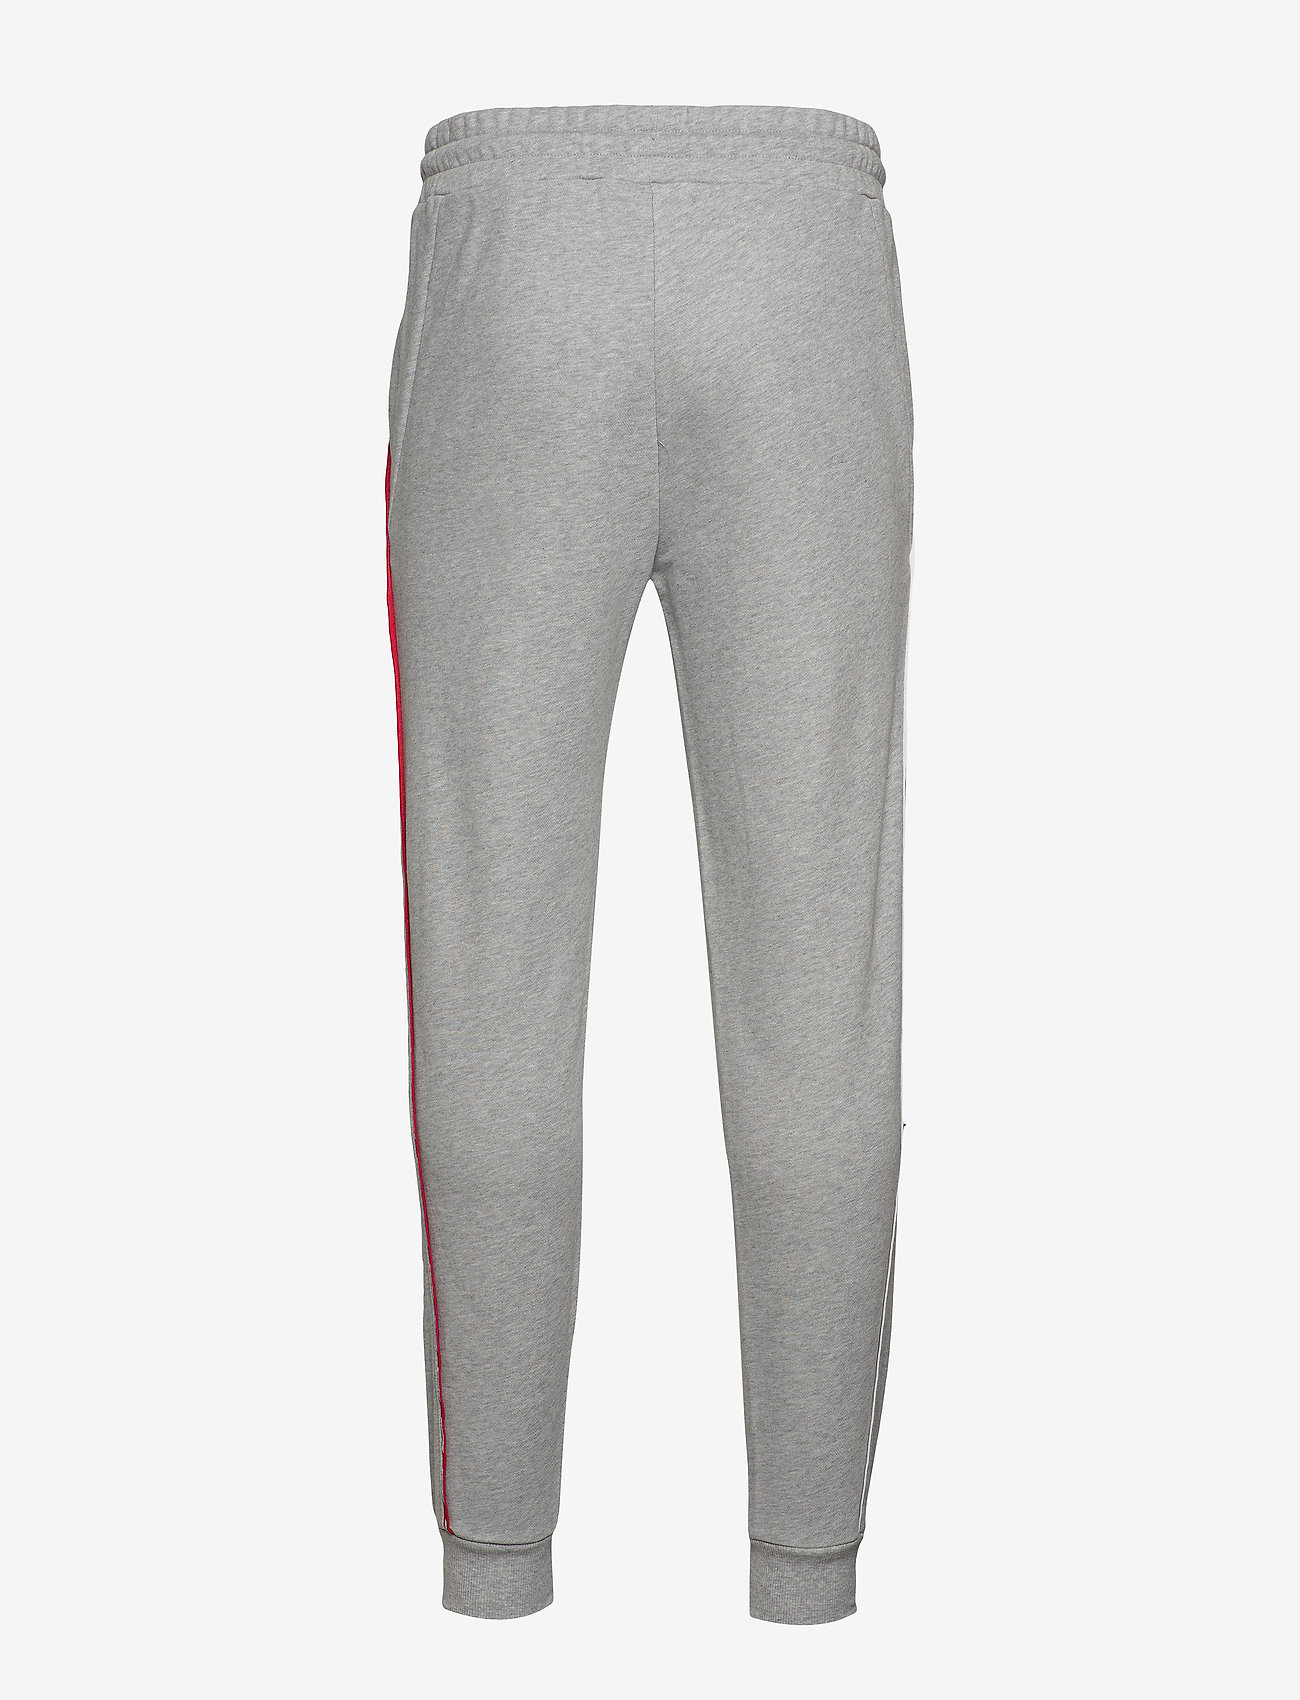 Tommy Sport - PIPING FLEECE CUFFED PANT - sweatpants - grey heather - 1